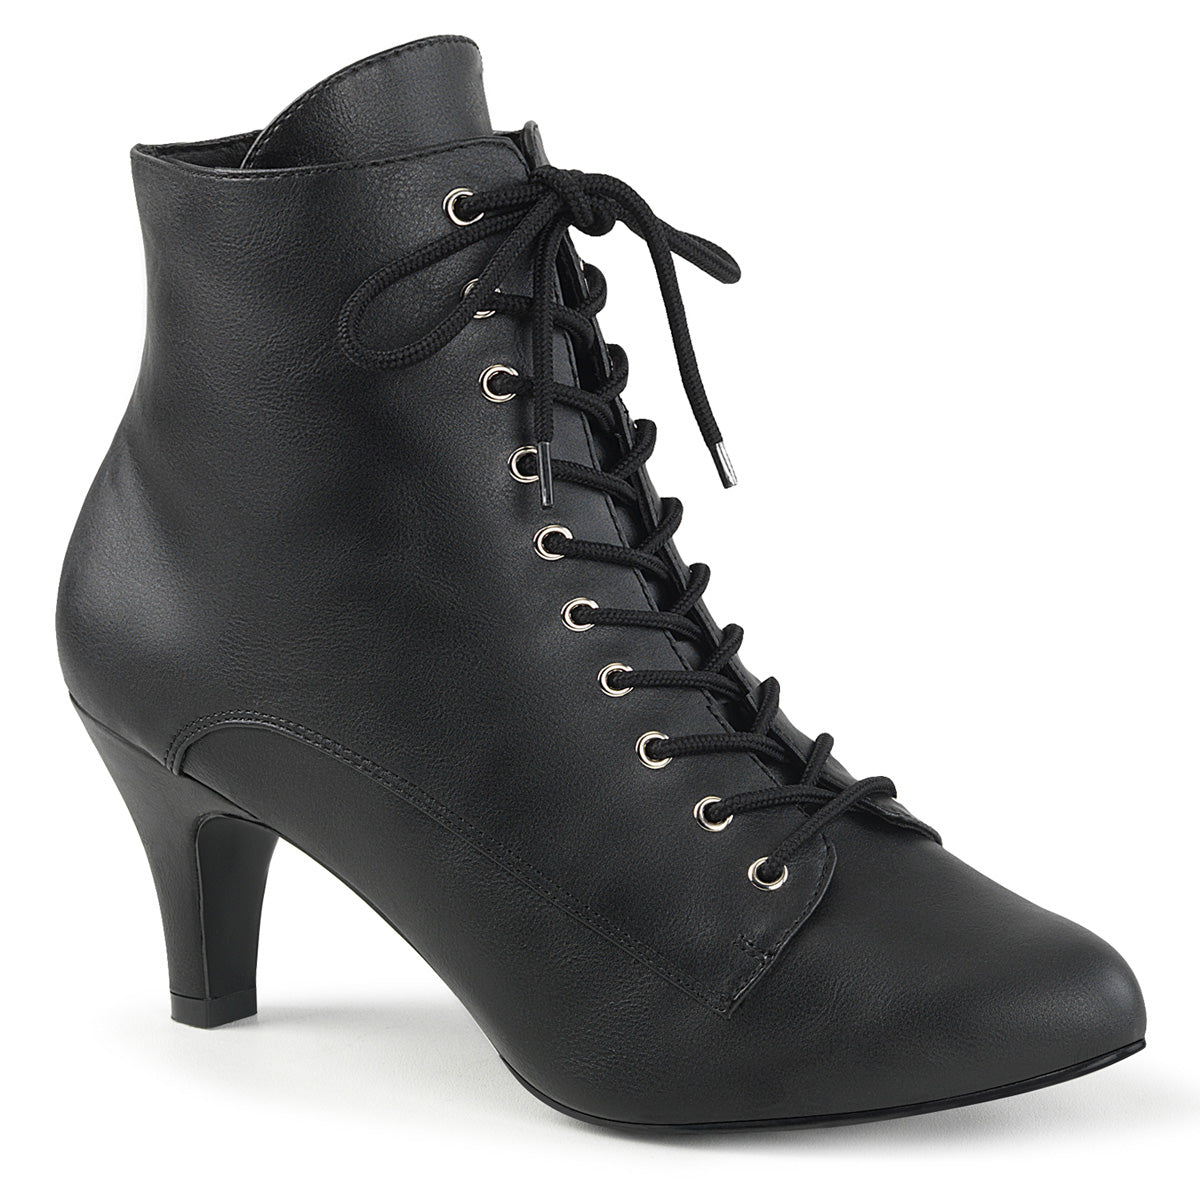 "3"" Heel Ankle Boot"